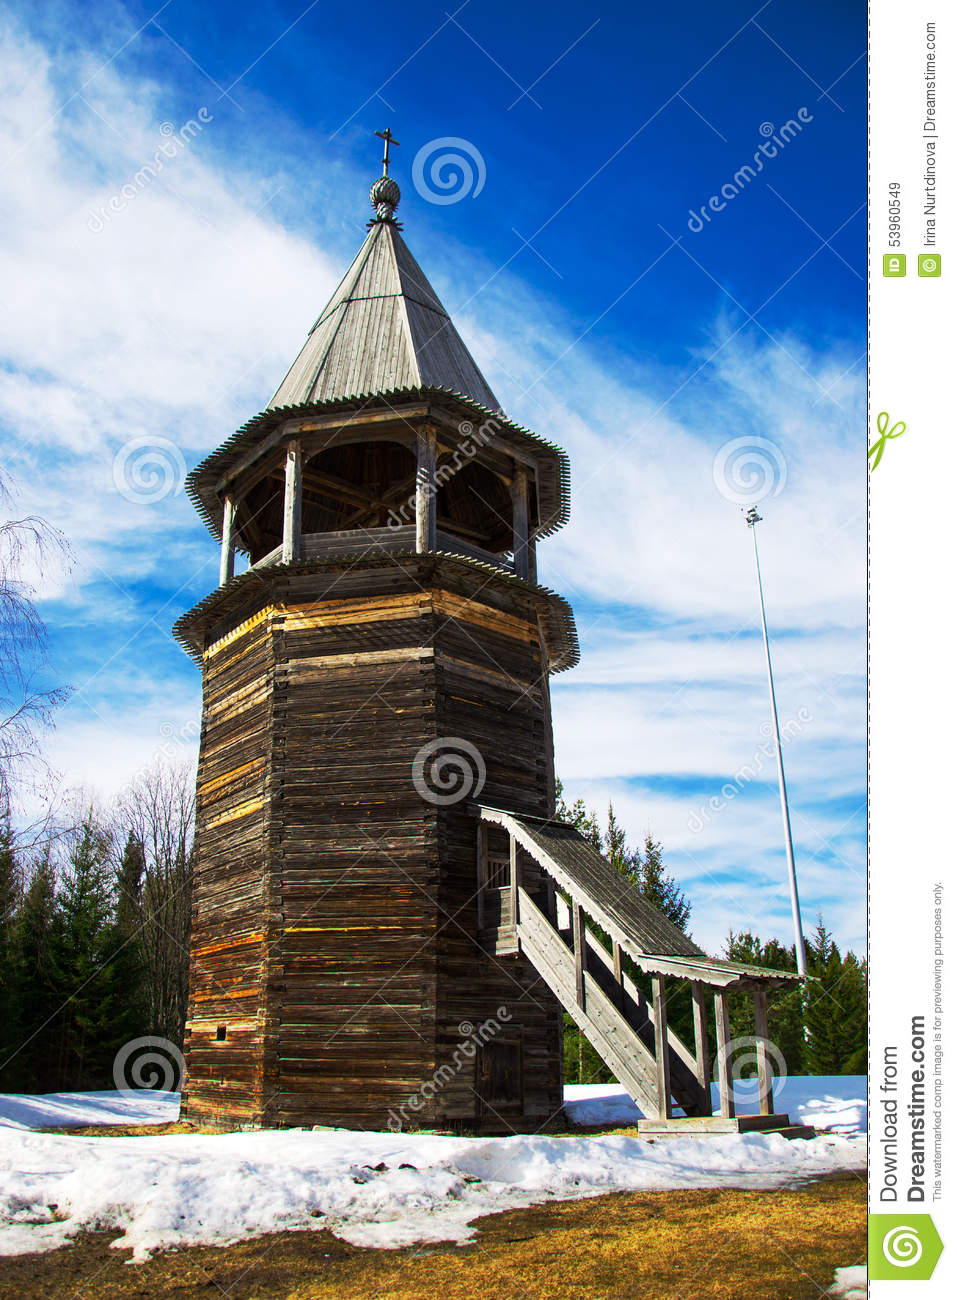 Lookout Tower Plans Wooden Lookout Tower Stock Photo Image 53960549